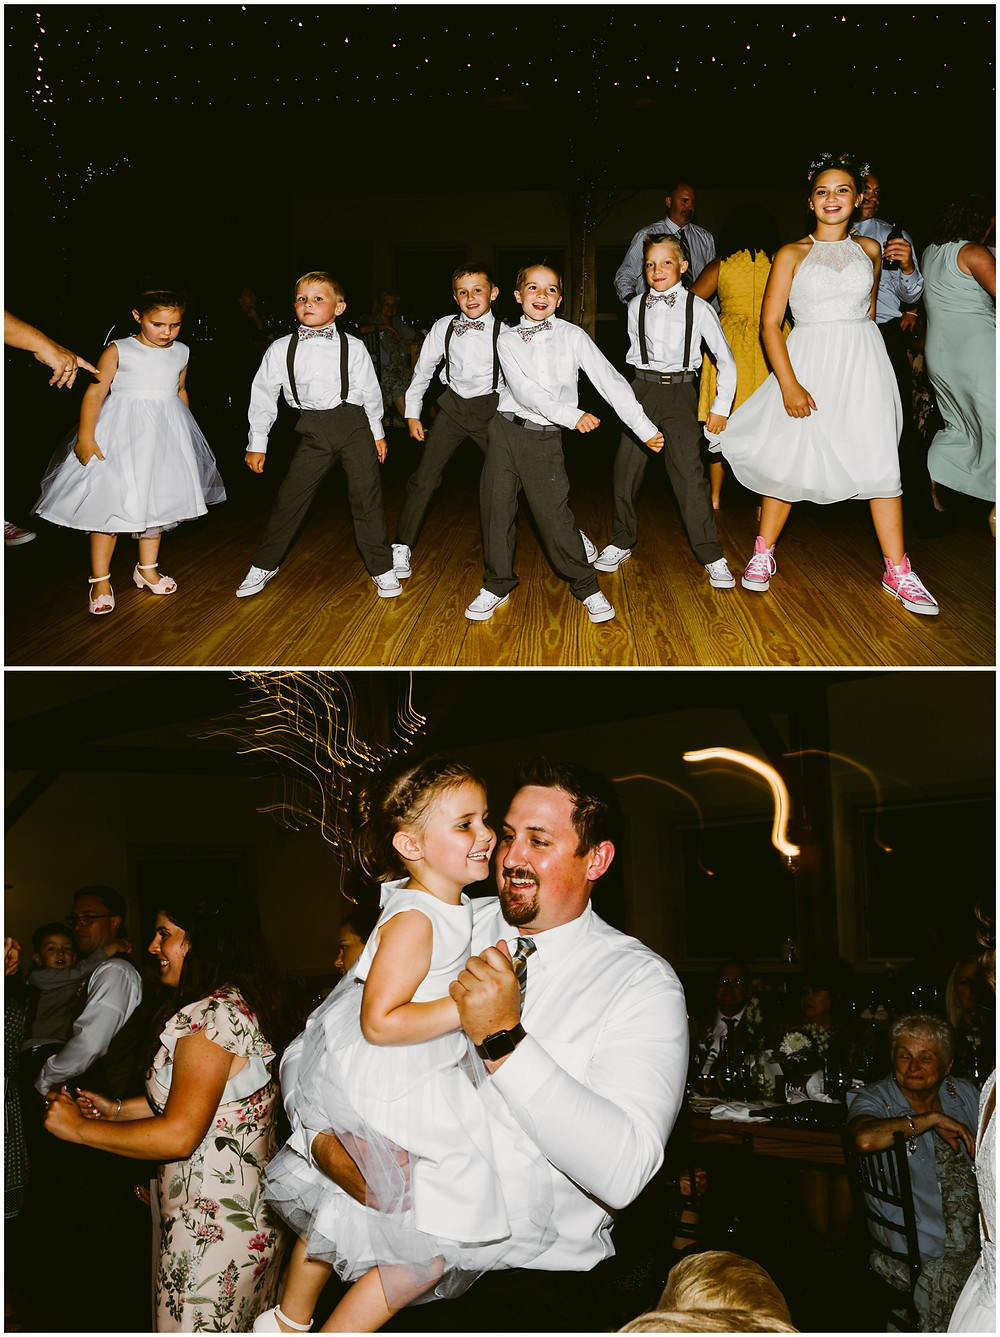 June wedding at the Mountain Top Inn and REsort in Chittenden, Vermont